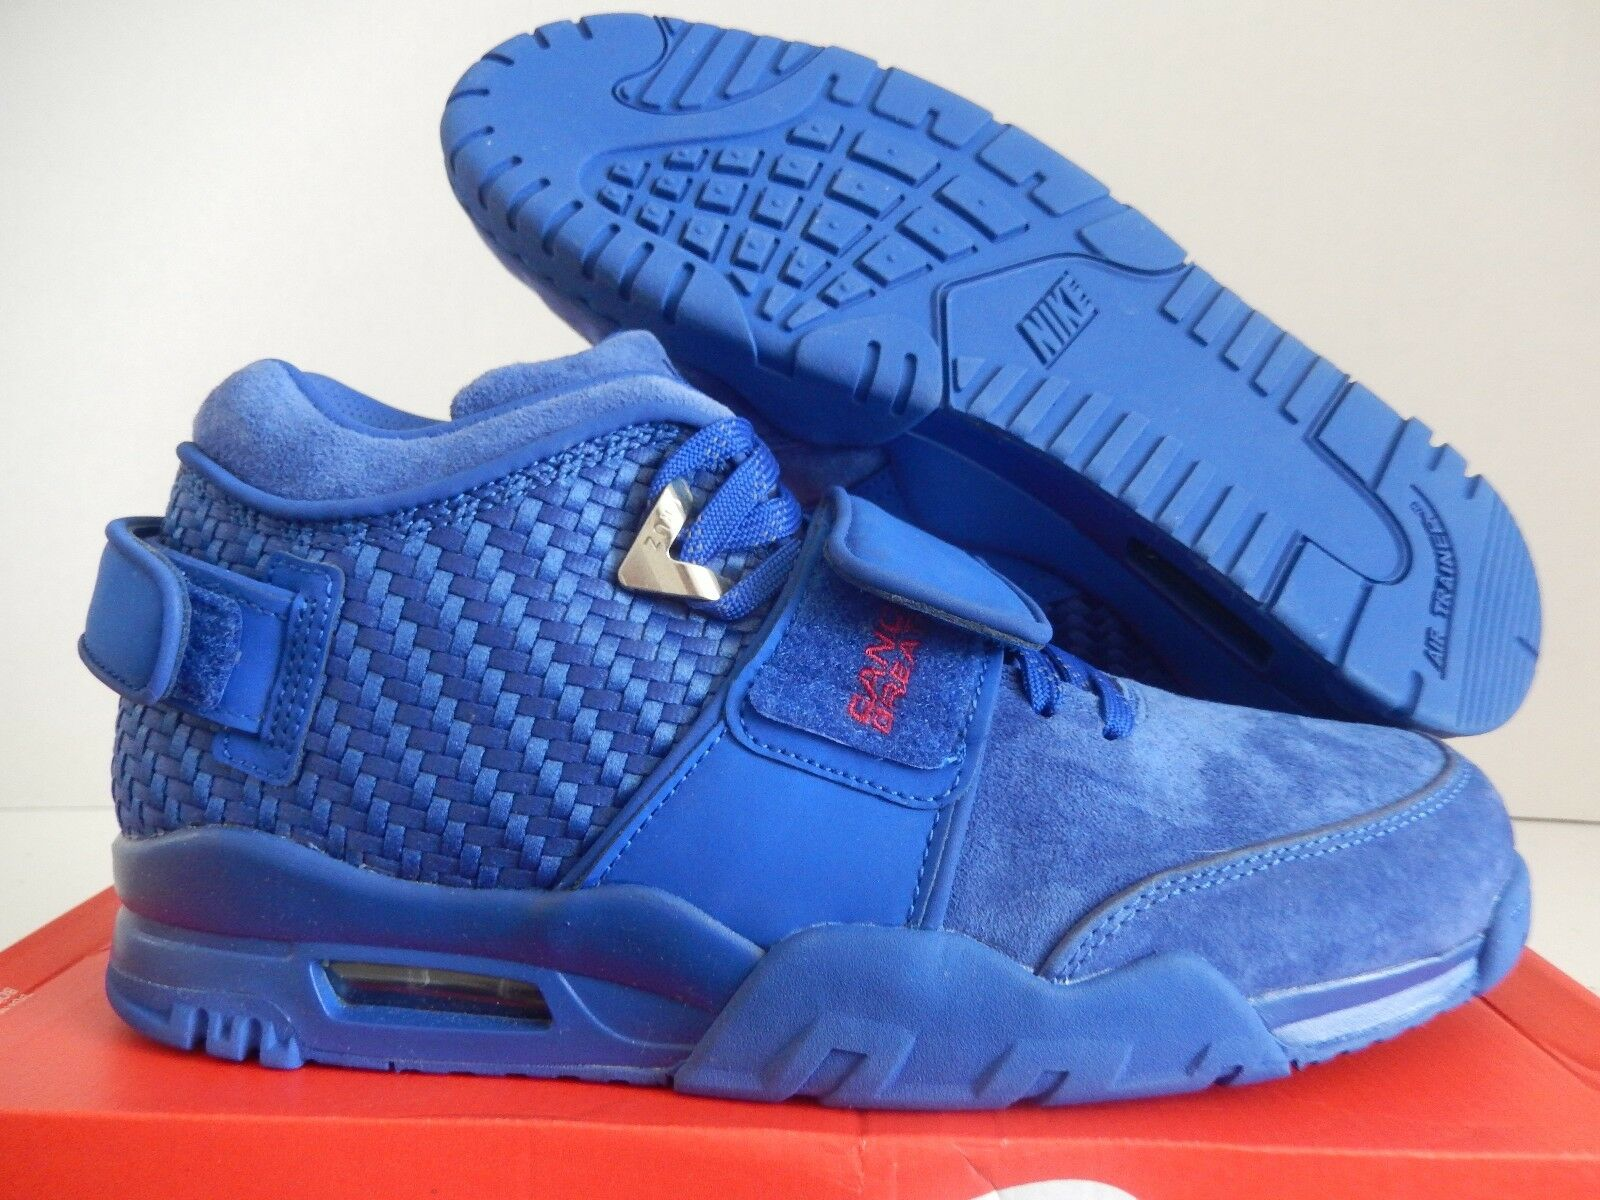 Nike air. v. cruz sonodiventate sz premio rush blue-gym red sz sonodiventate 11 [812637-400] 13c659